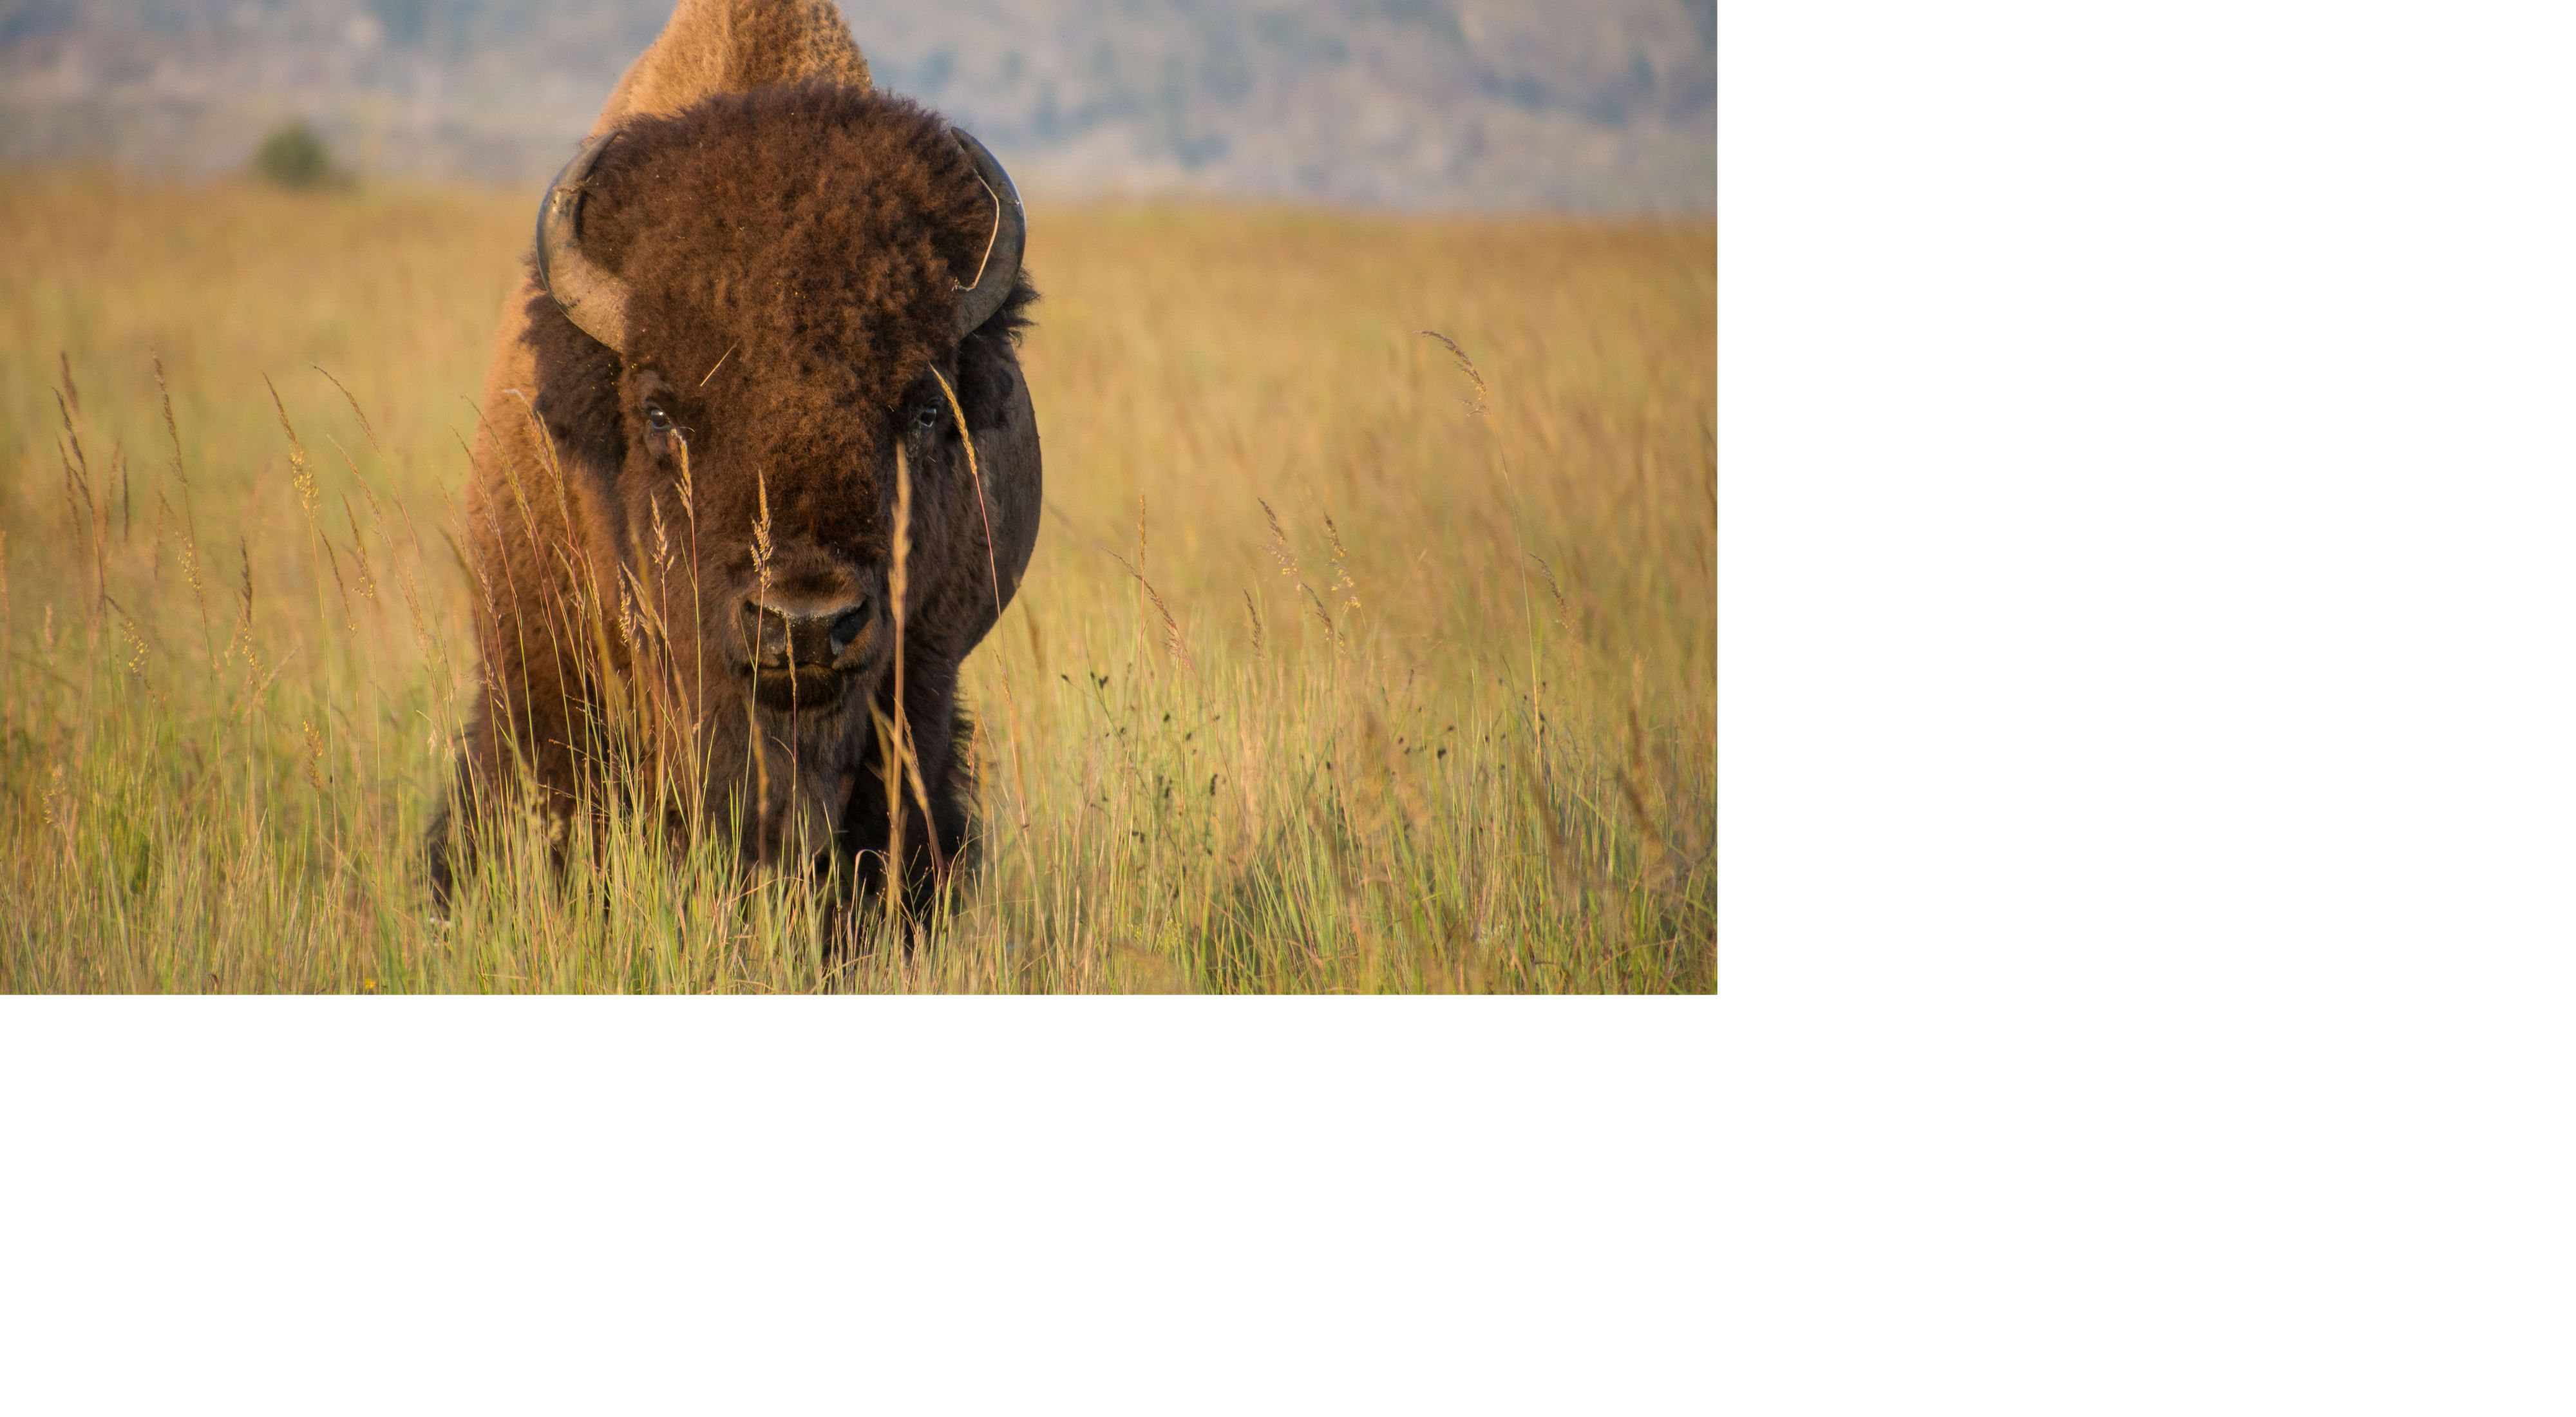 Bison bull standing in tall grass